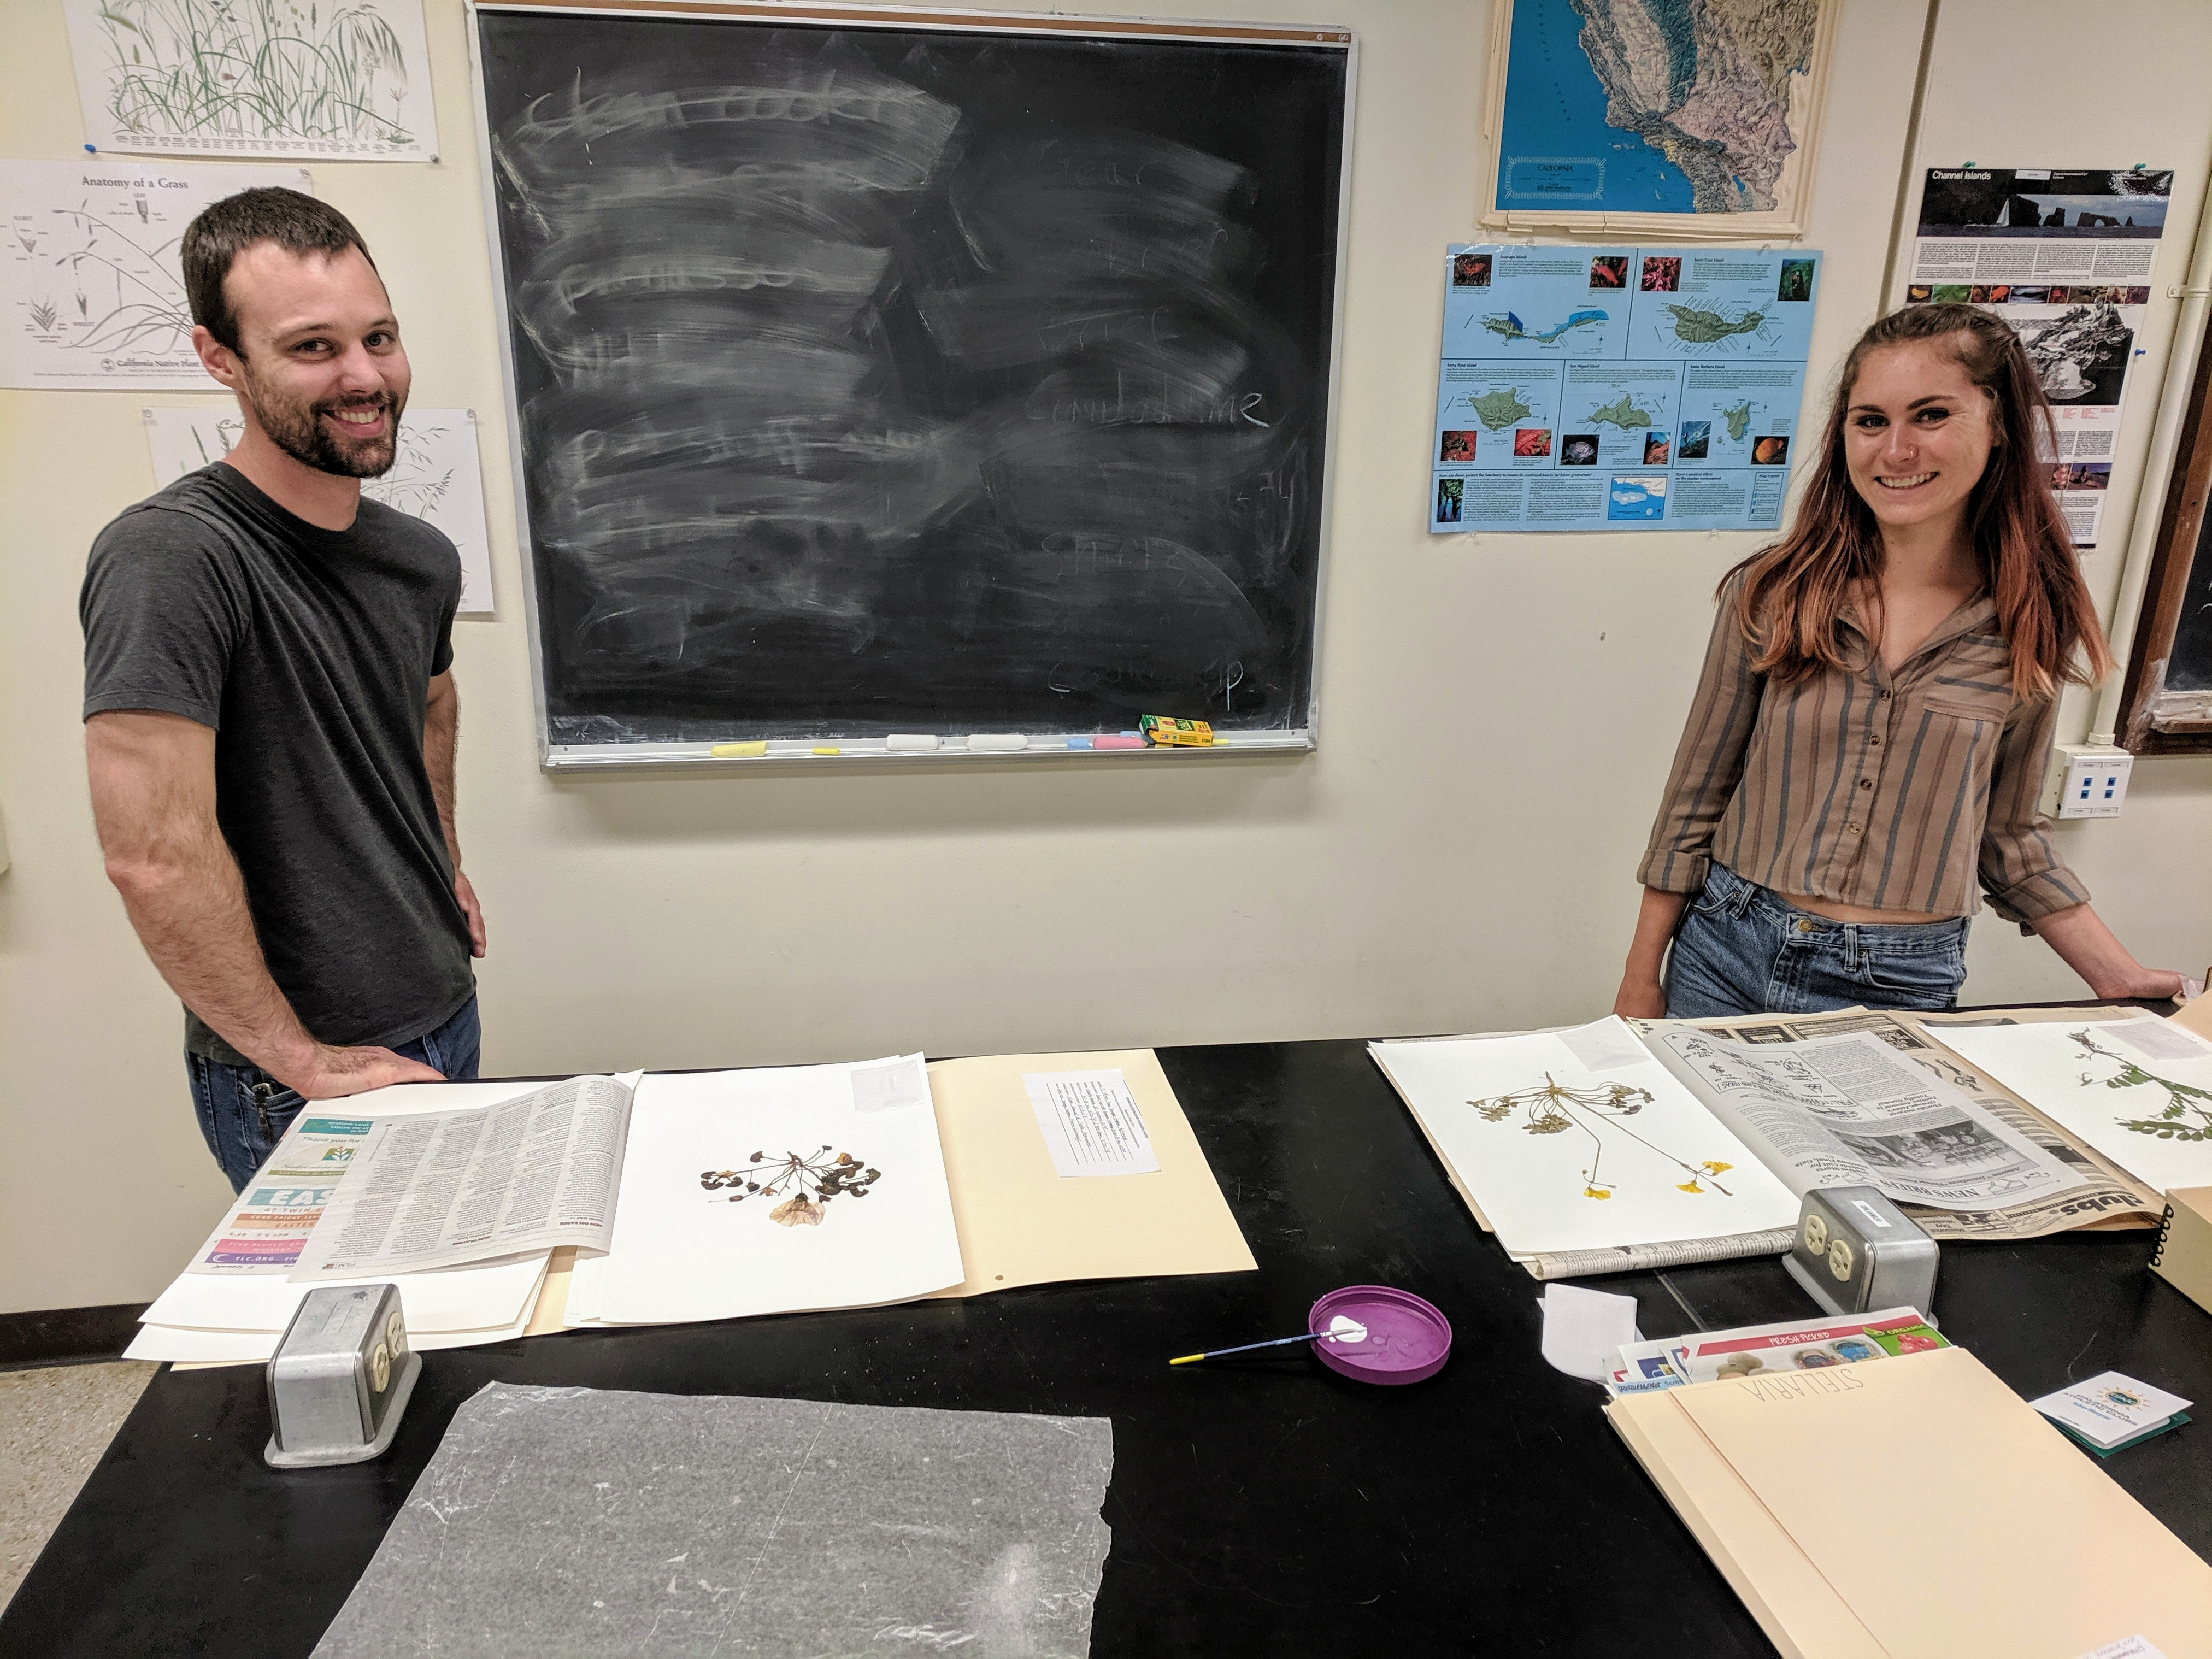 two people and some herbarium specimens